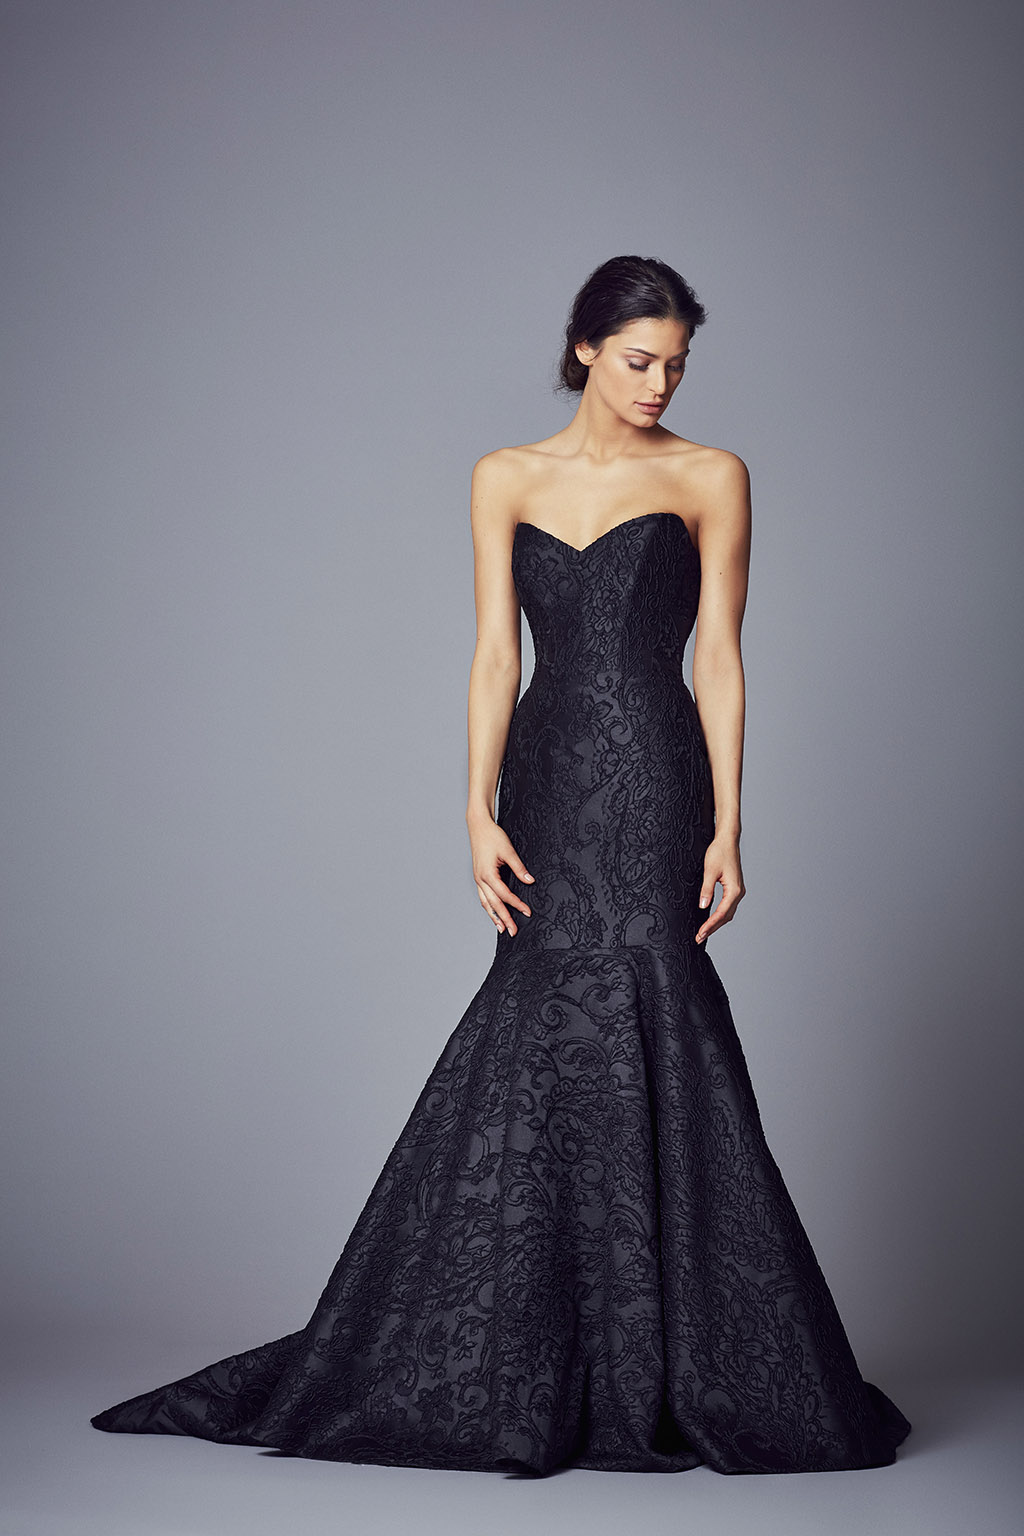 f86c6826d7cf Designer Evening Wear - Gown Designs - Suzanne Neville